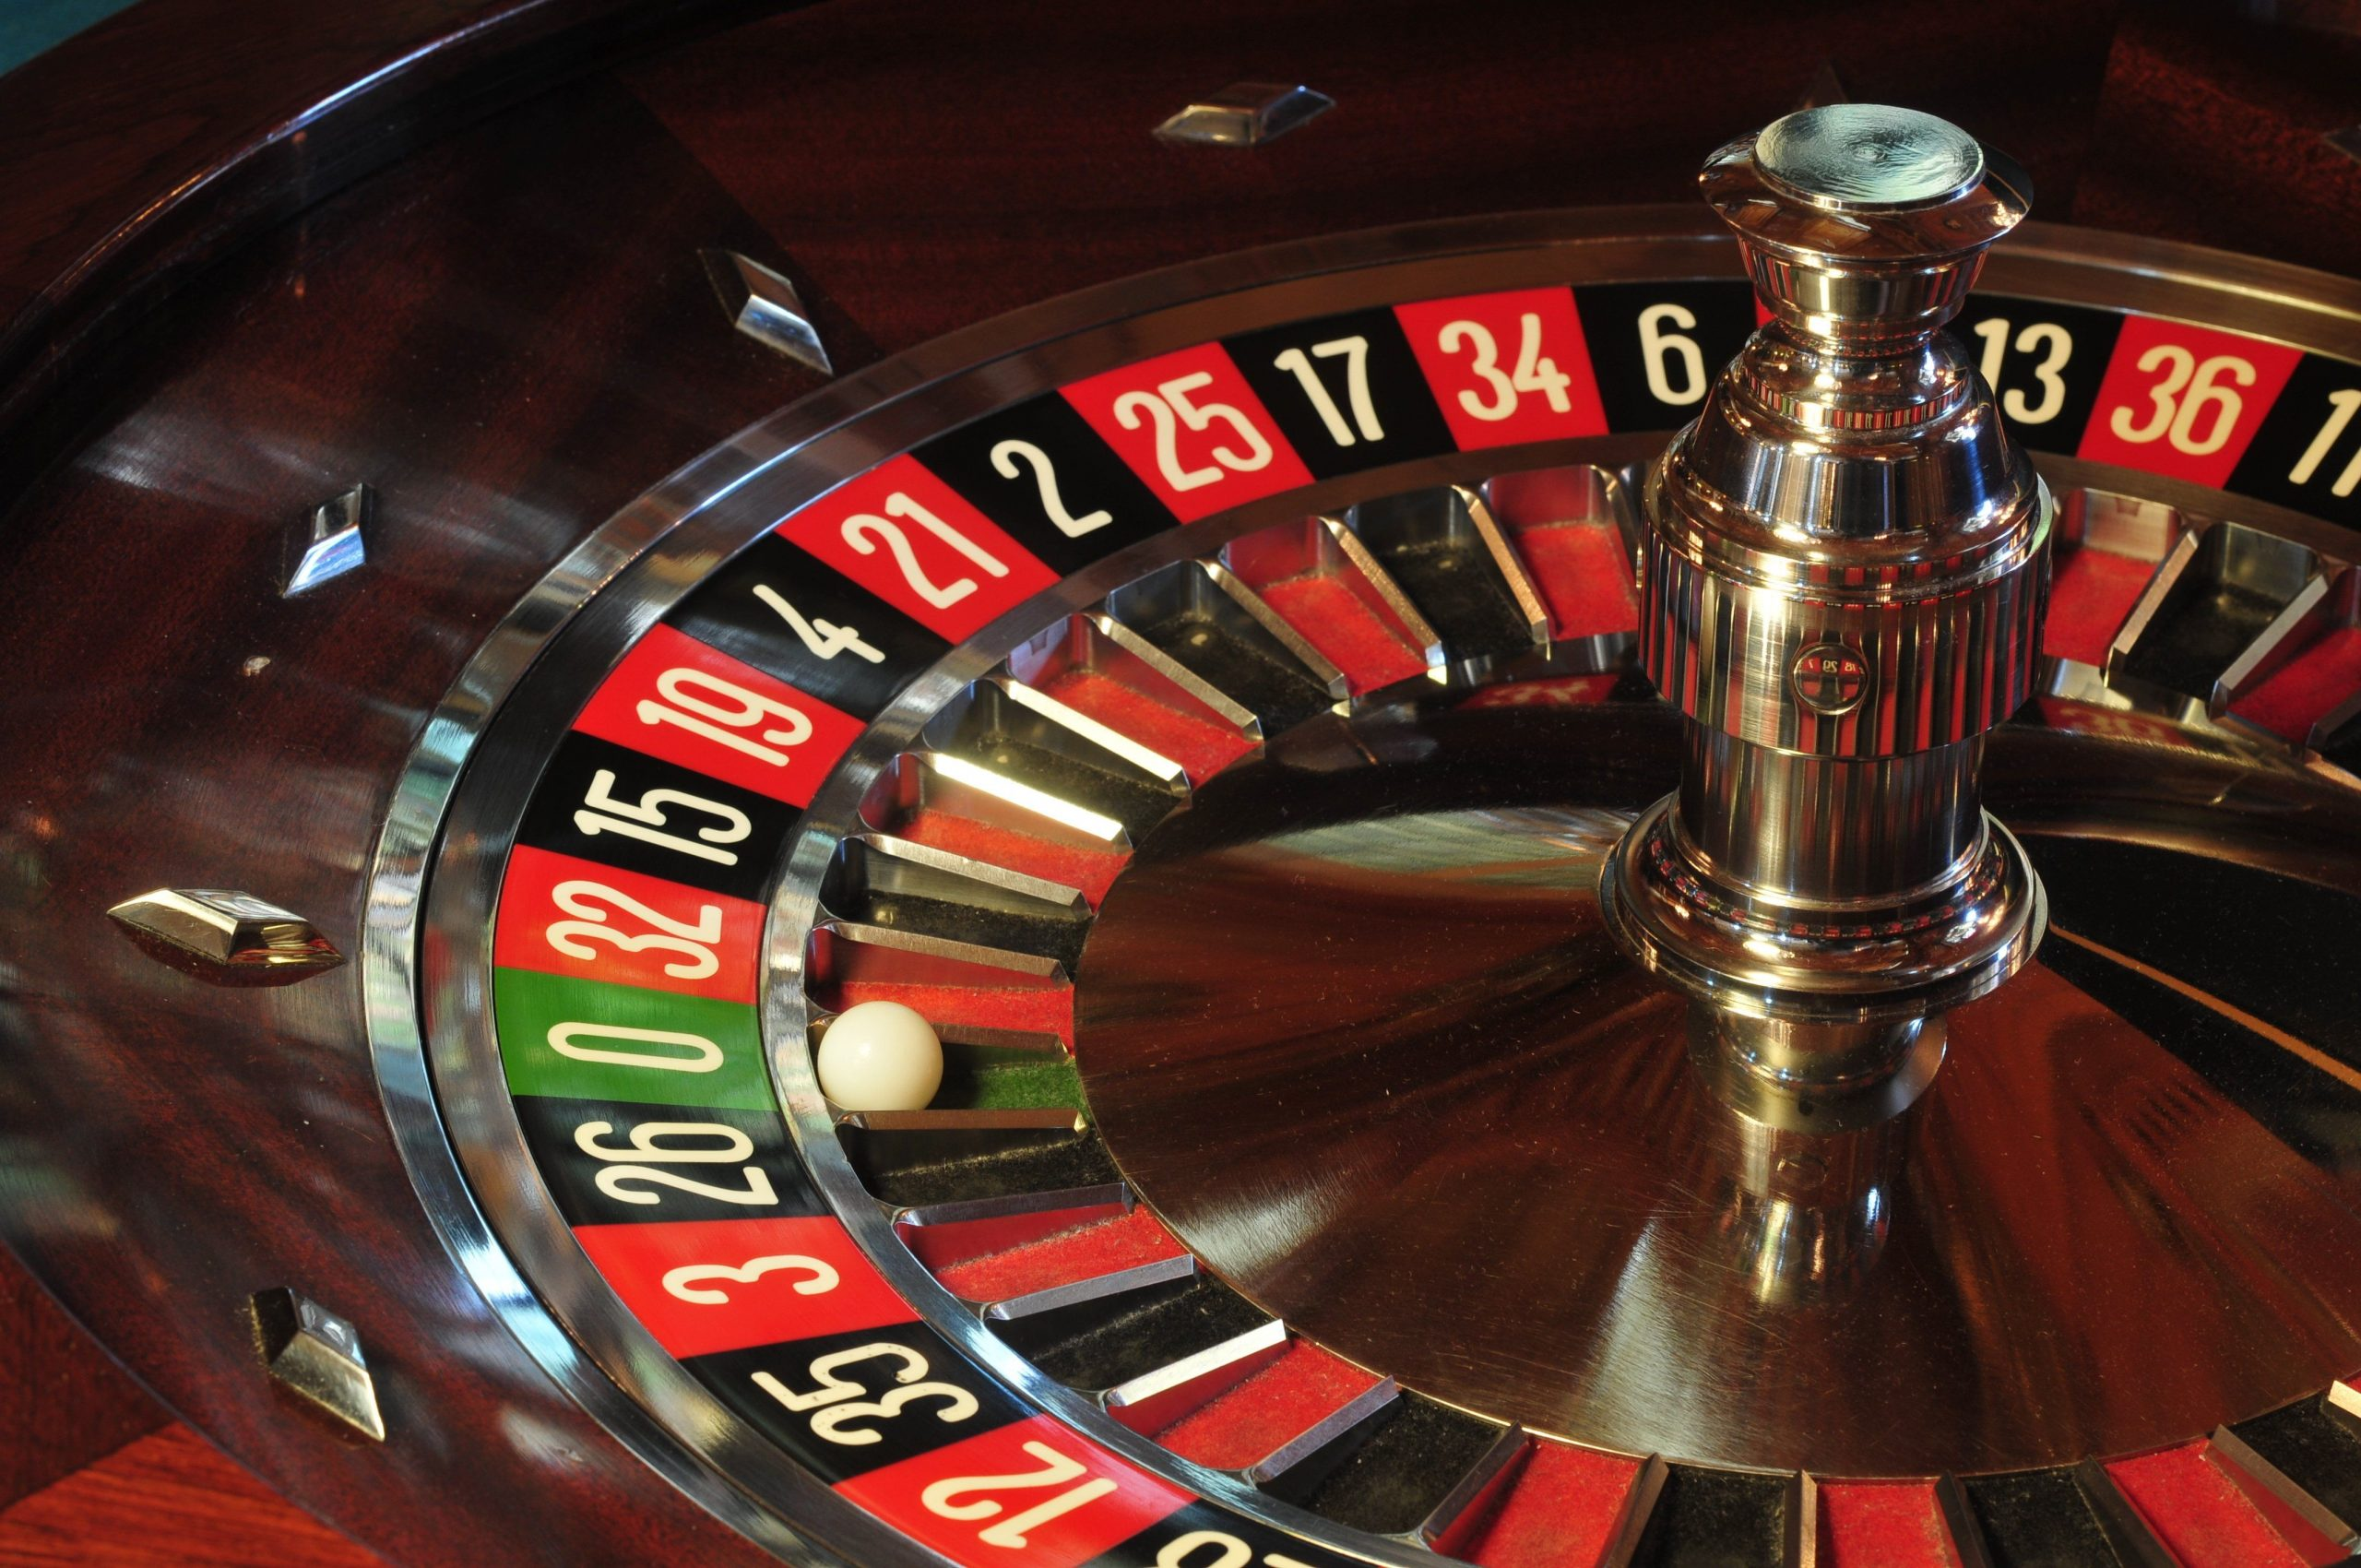 Casino News For The Best Online Casino - Gambling